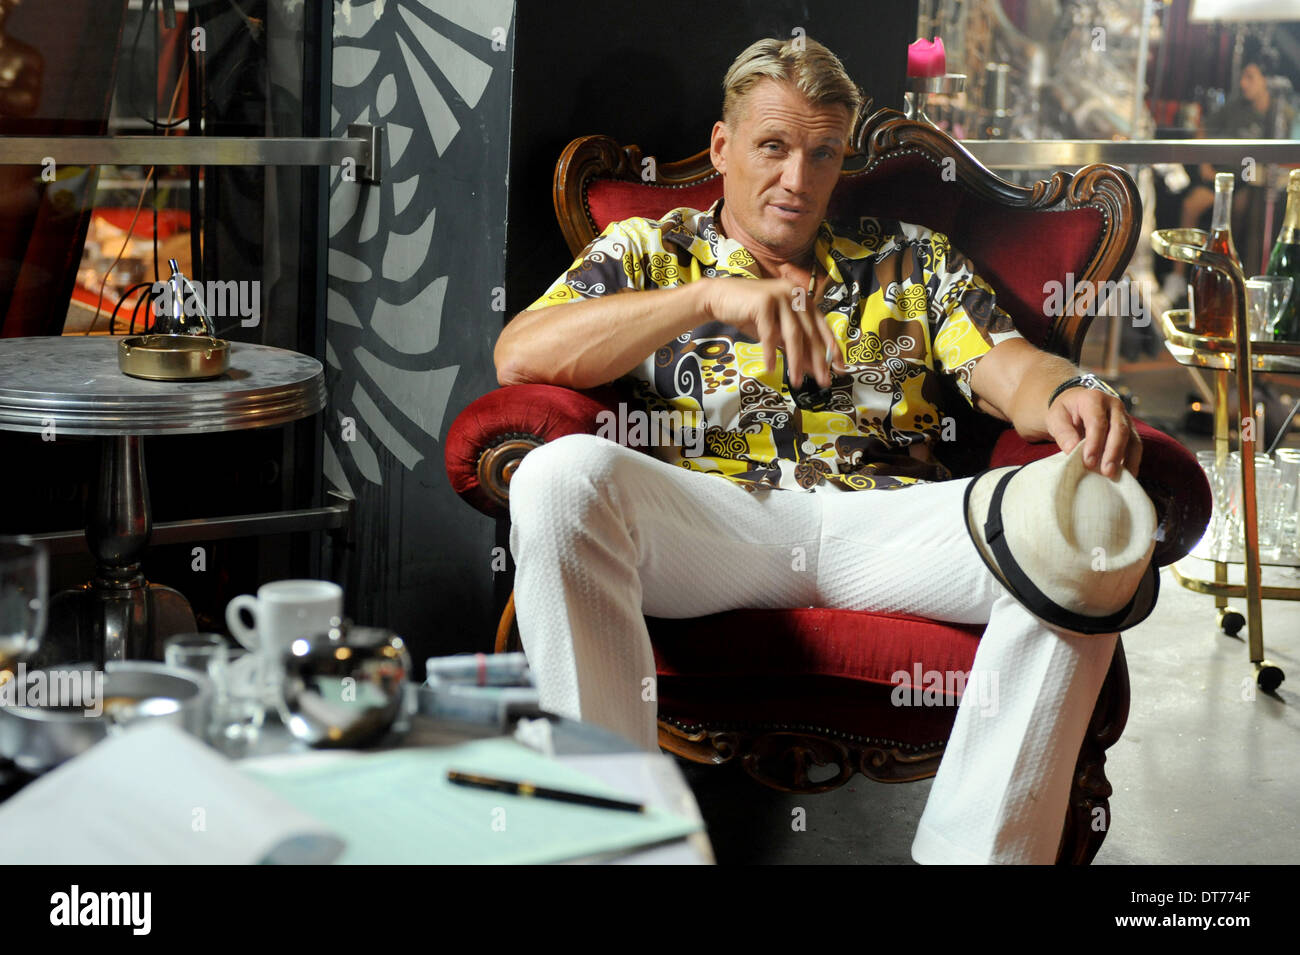 DOLPH LUNDGREN ONE IN THE CHAMBER (2012) - Stock Image